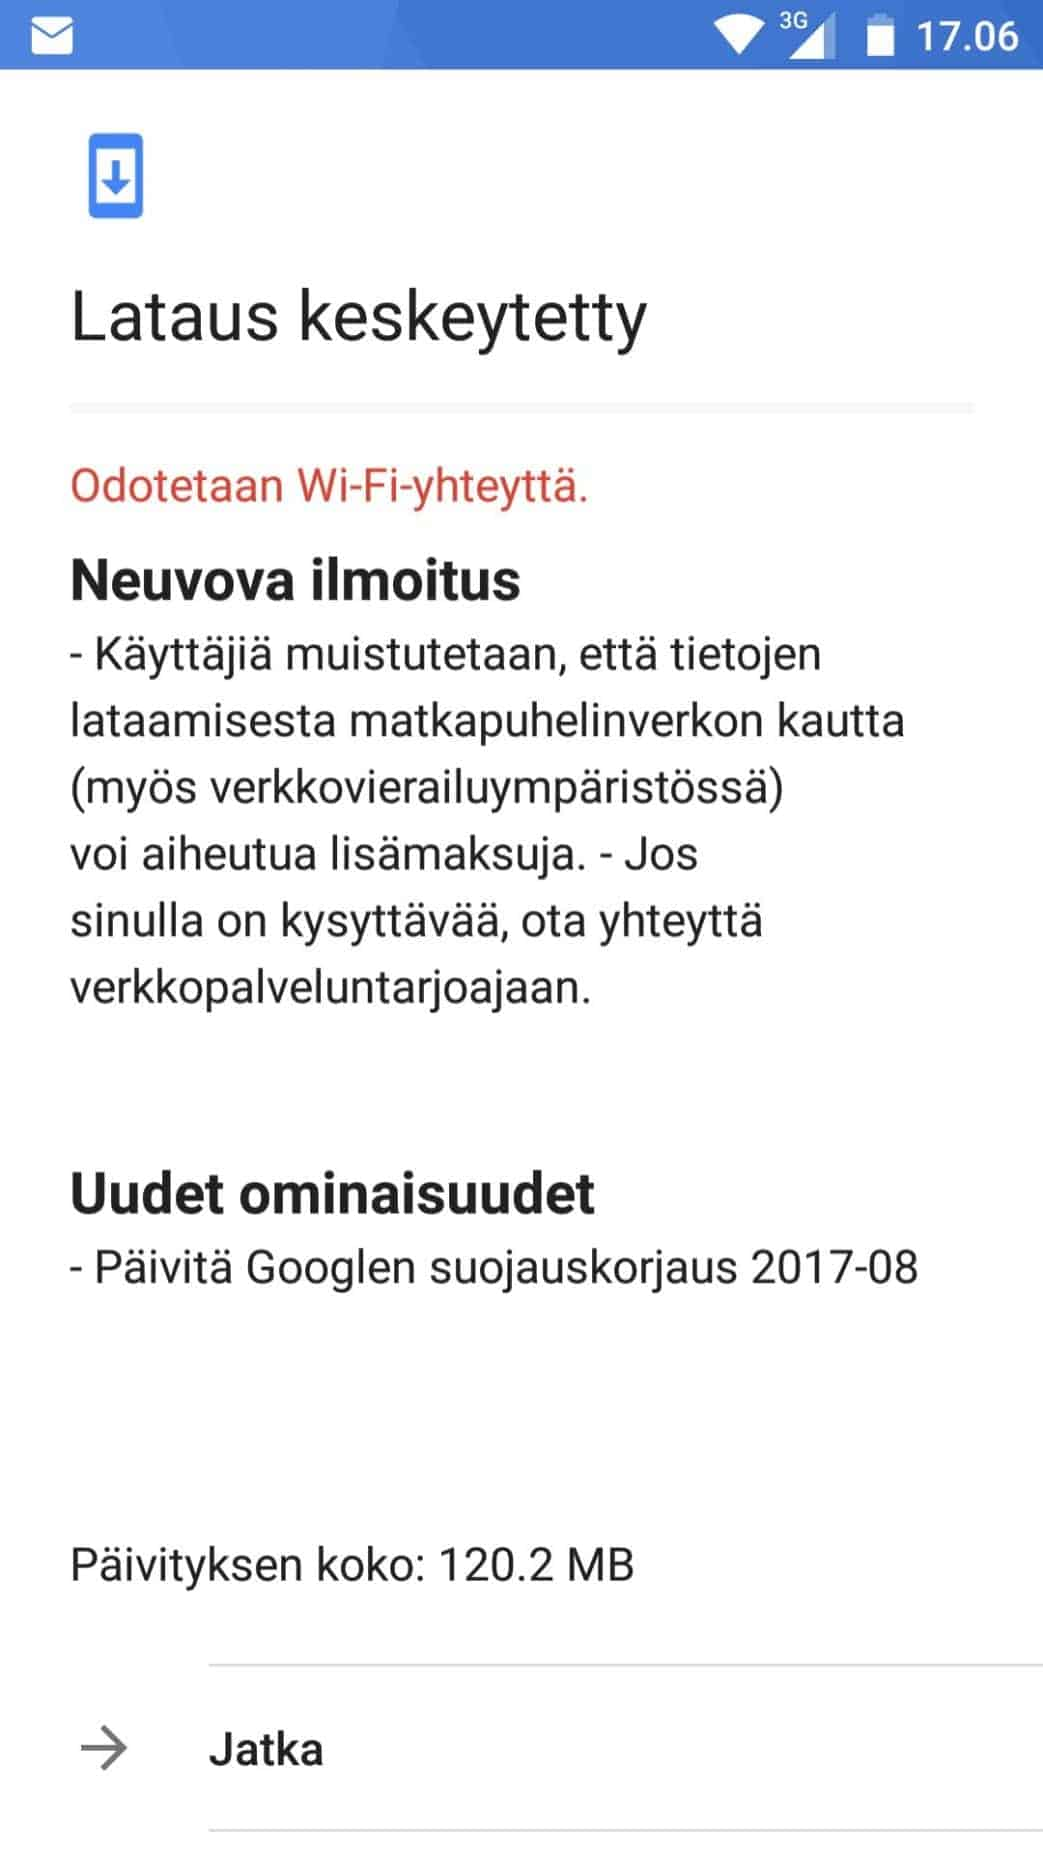 Nokia 5 and Nokia 6 August Security Patch 1